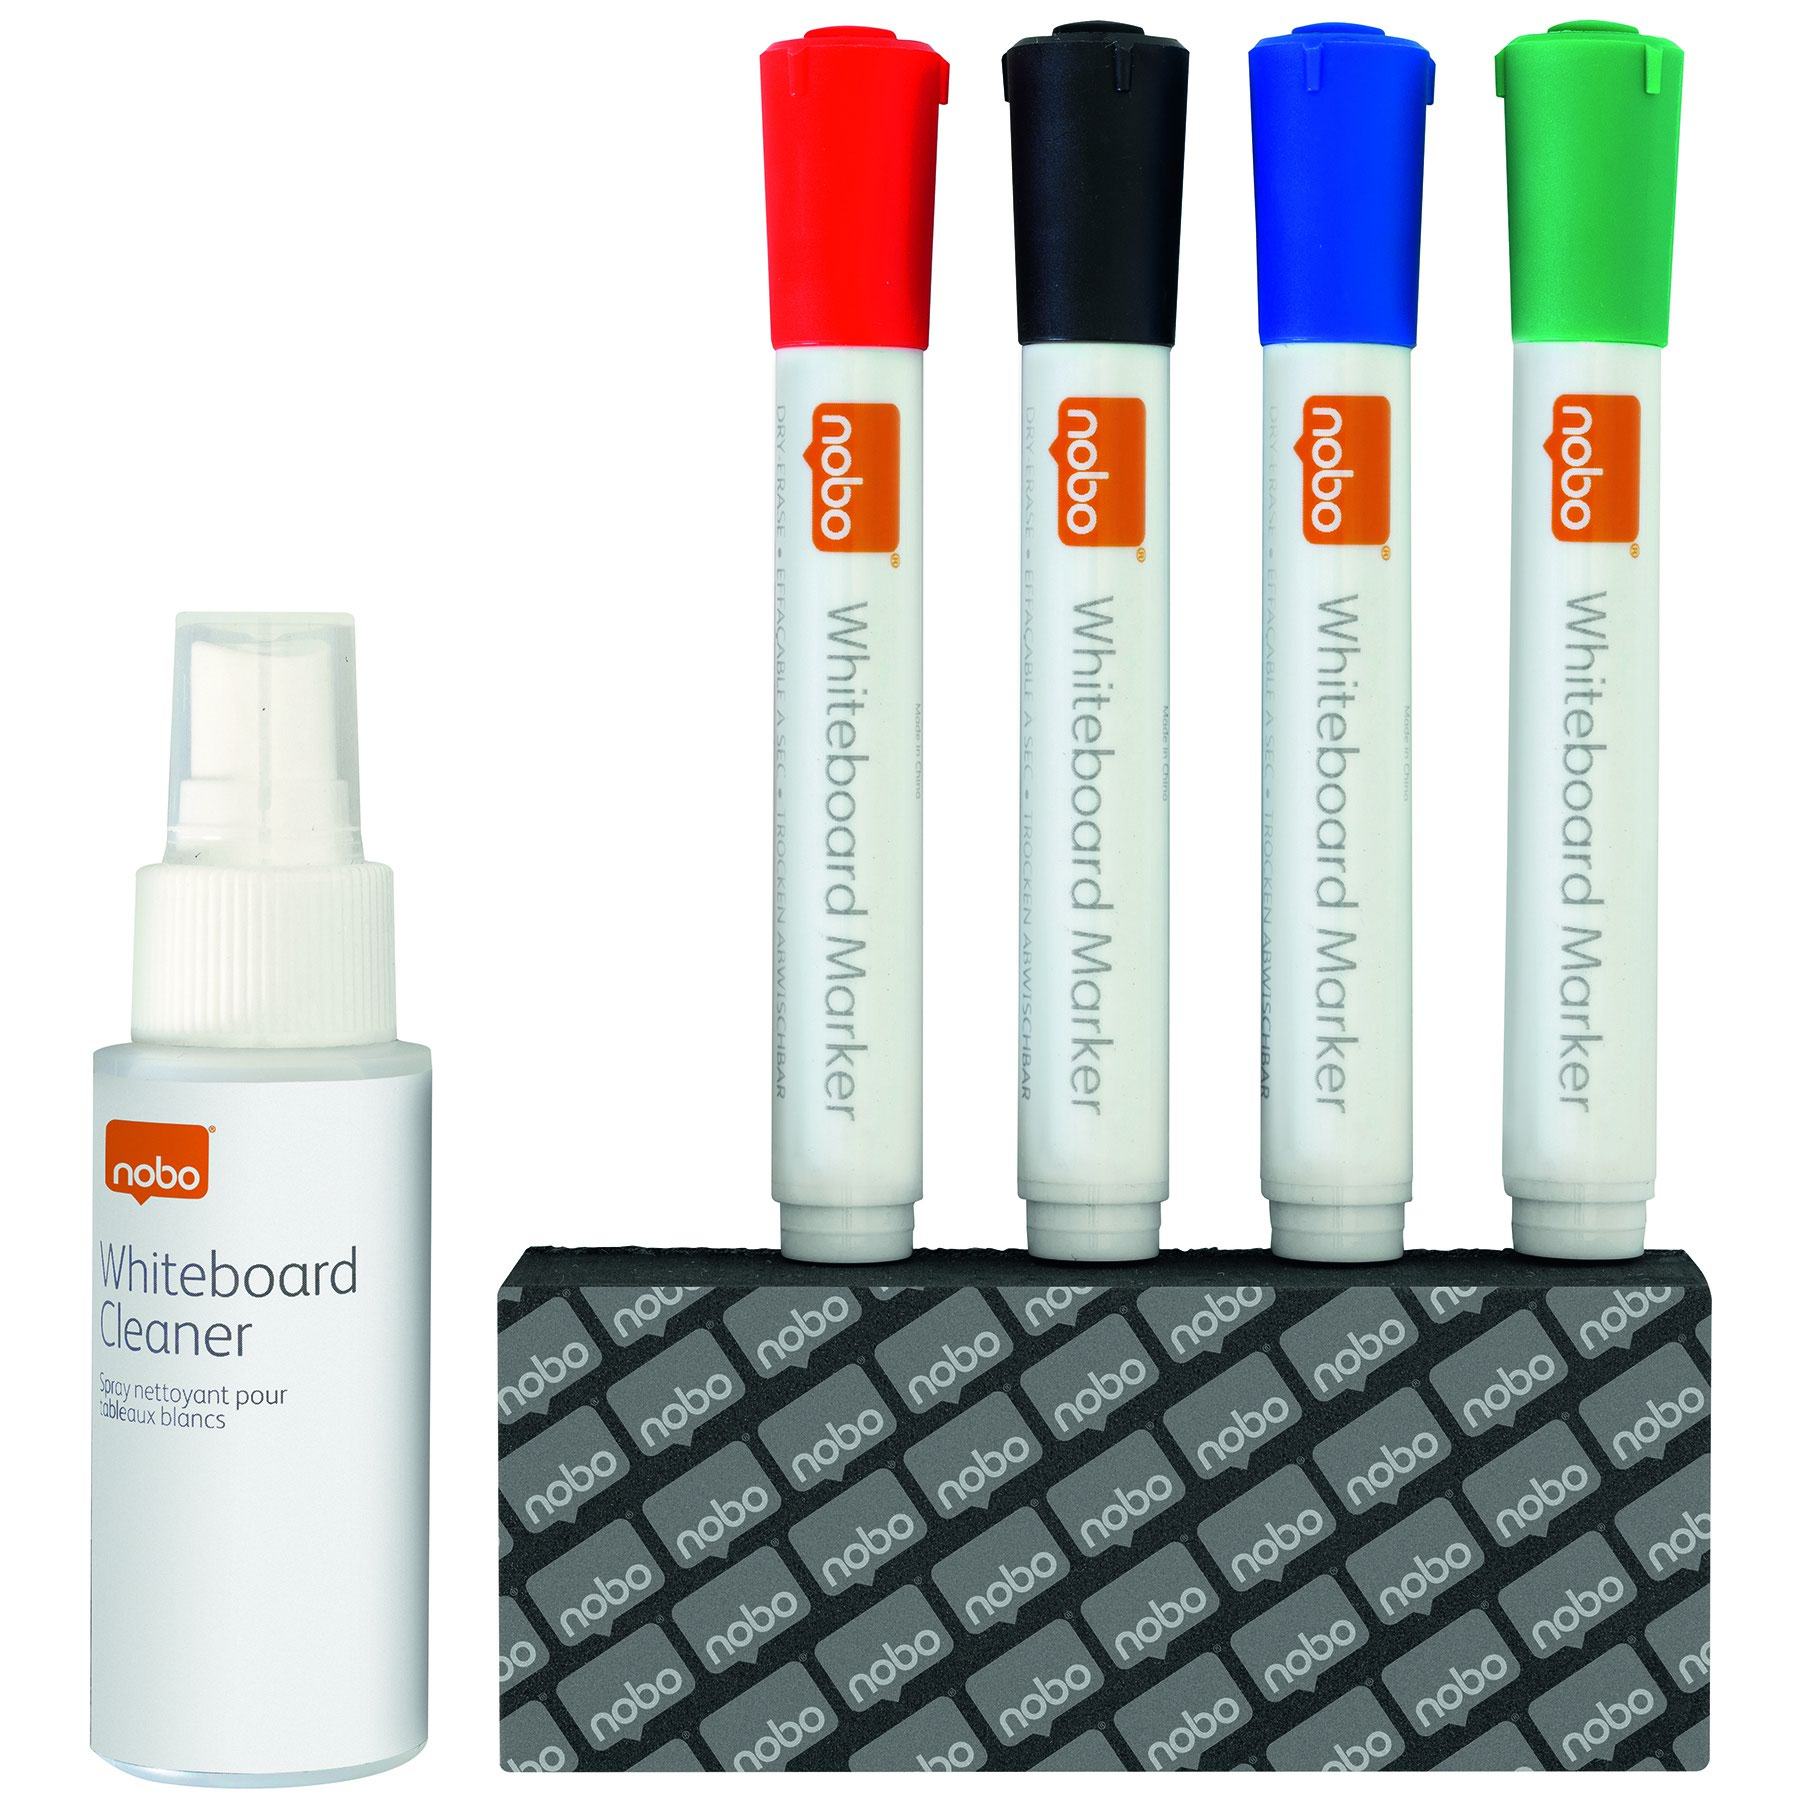 Rexel Whiteboard Cleaning Kit 1903798